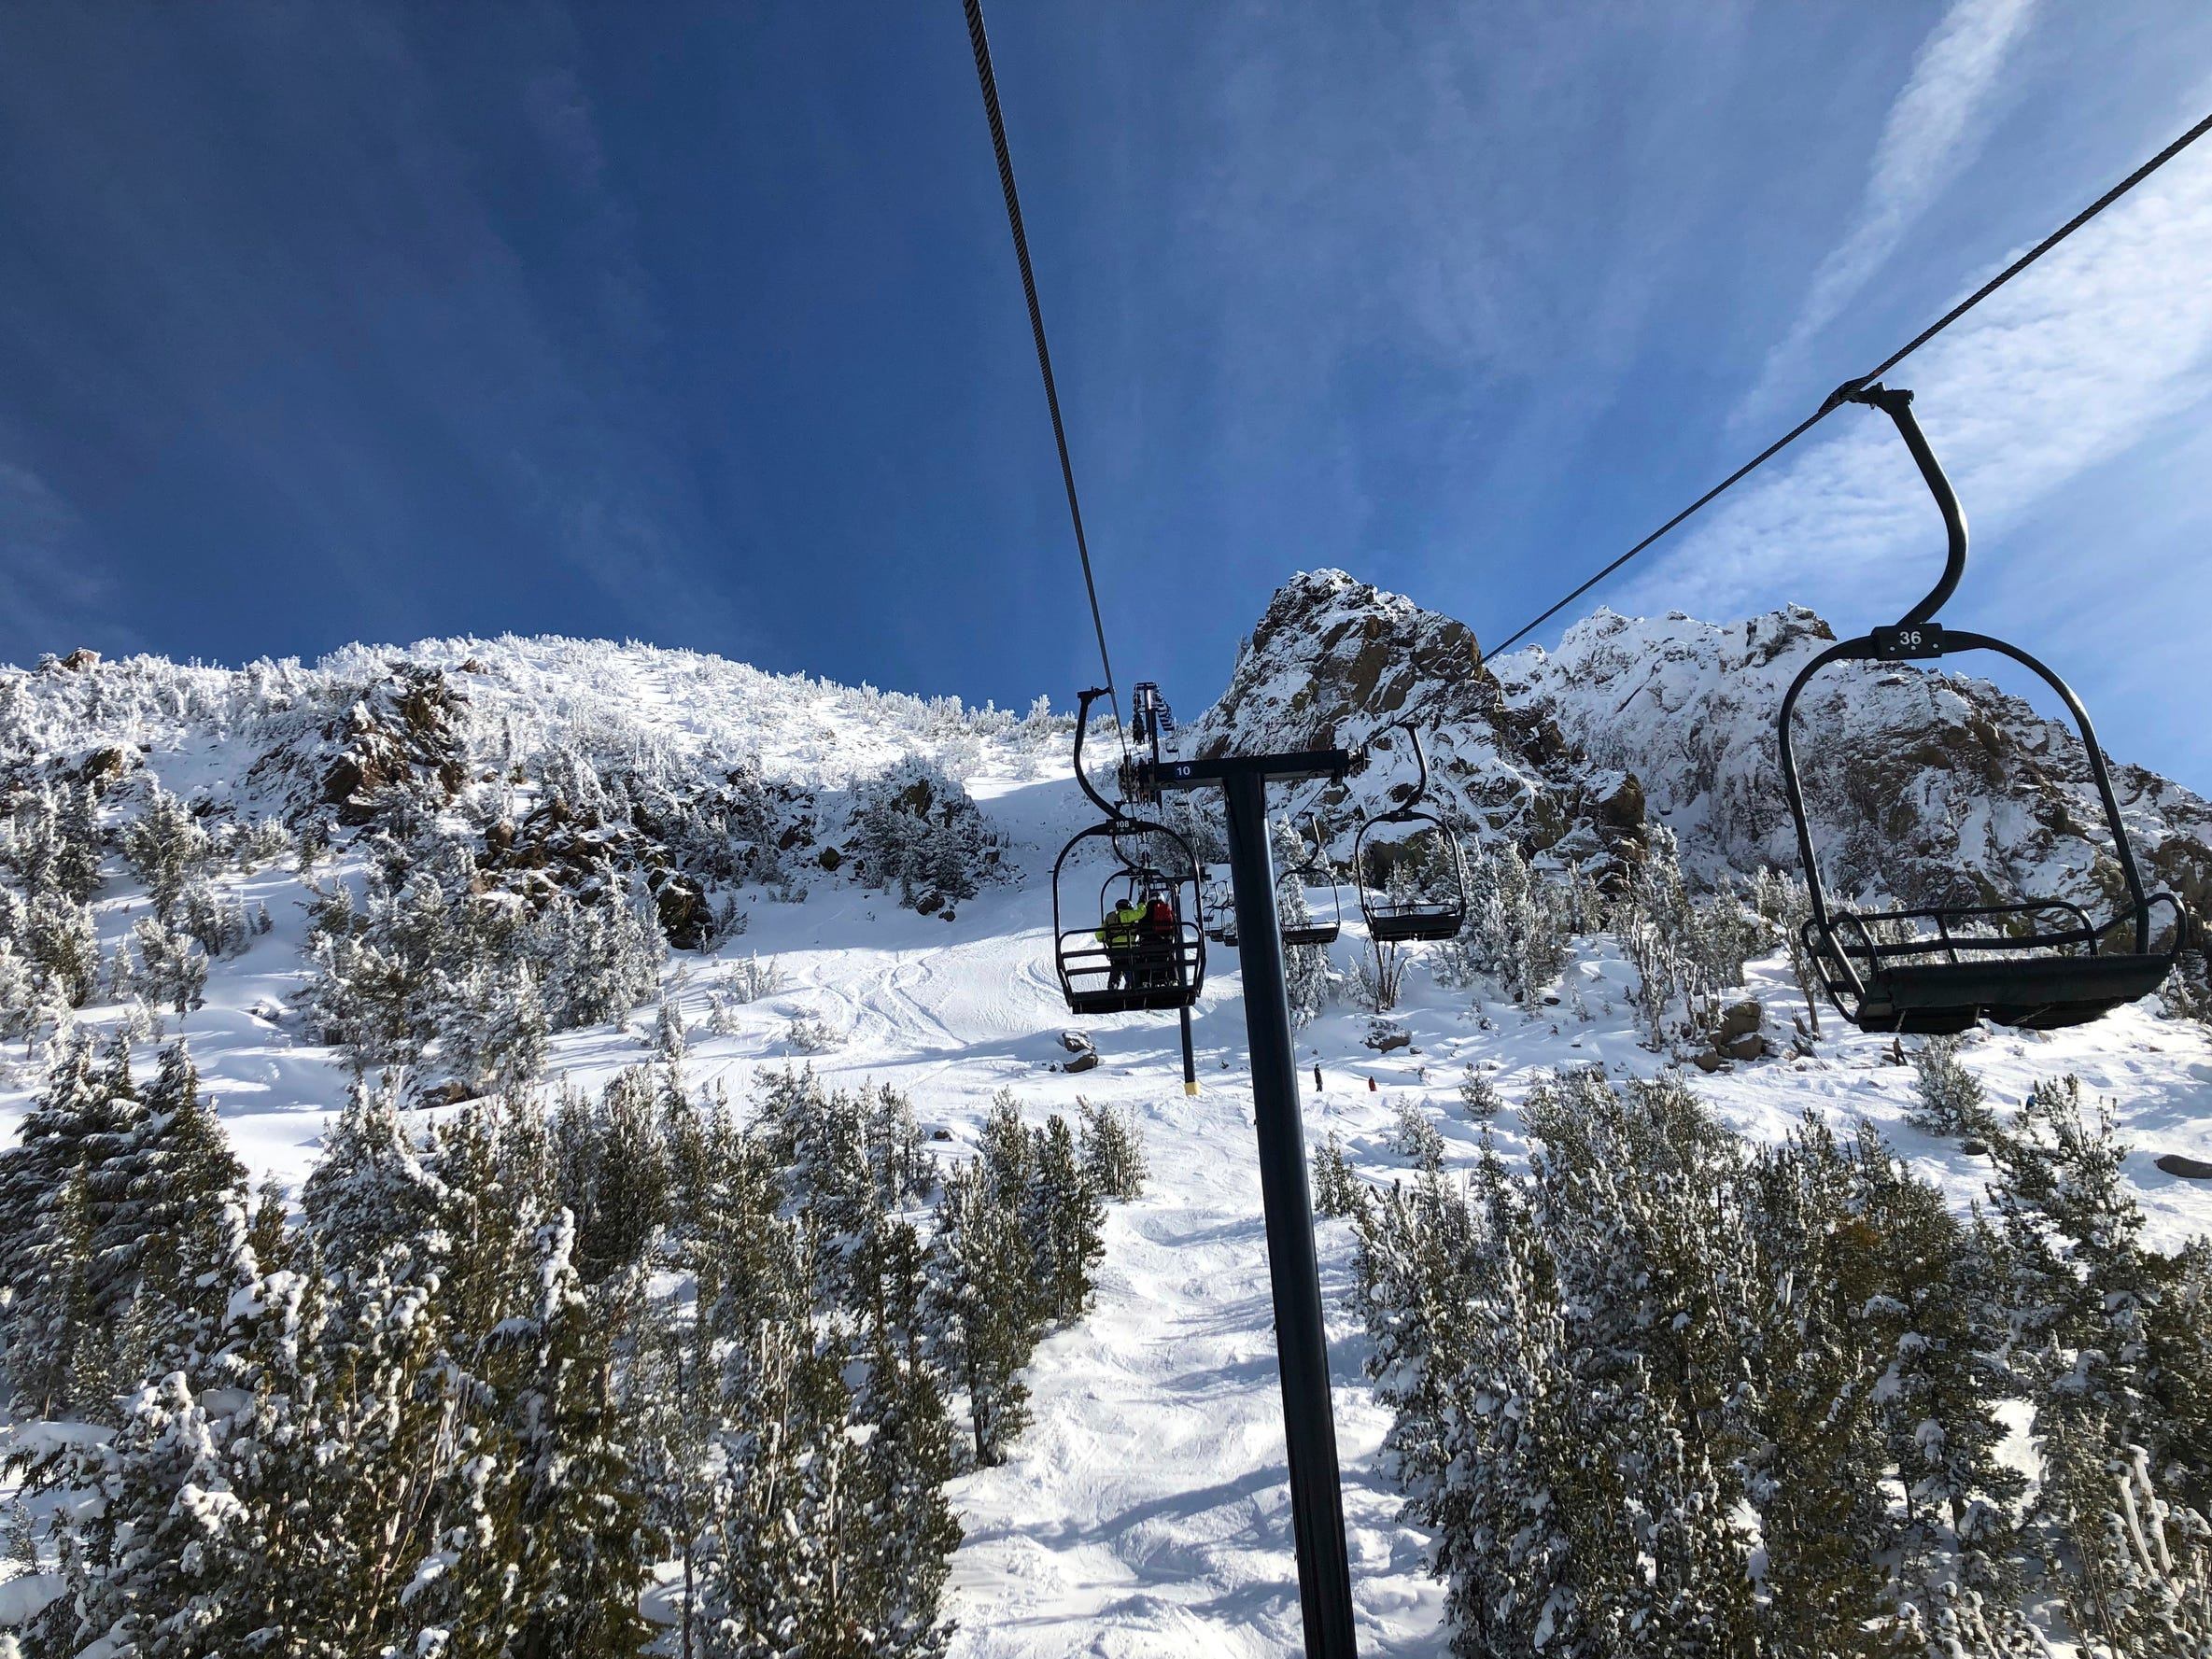 Skiers going up a lift at Mammoth Mountain ski resort in Mammoth Lakes, Calif on Dec. 7.